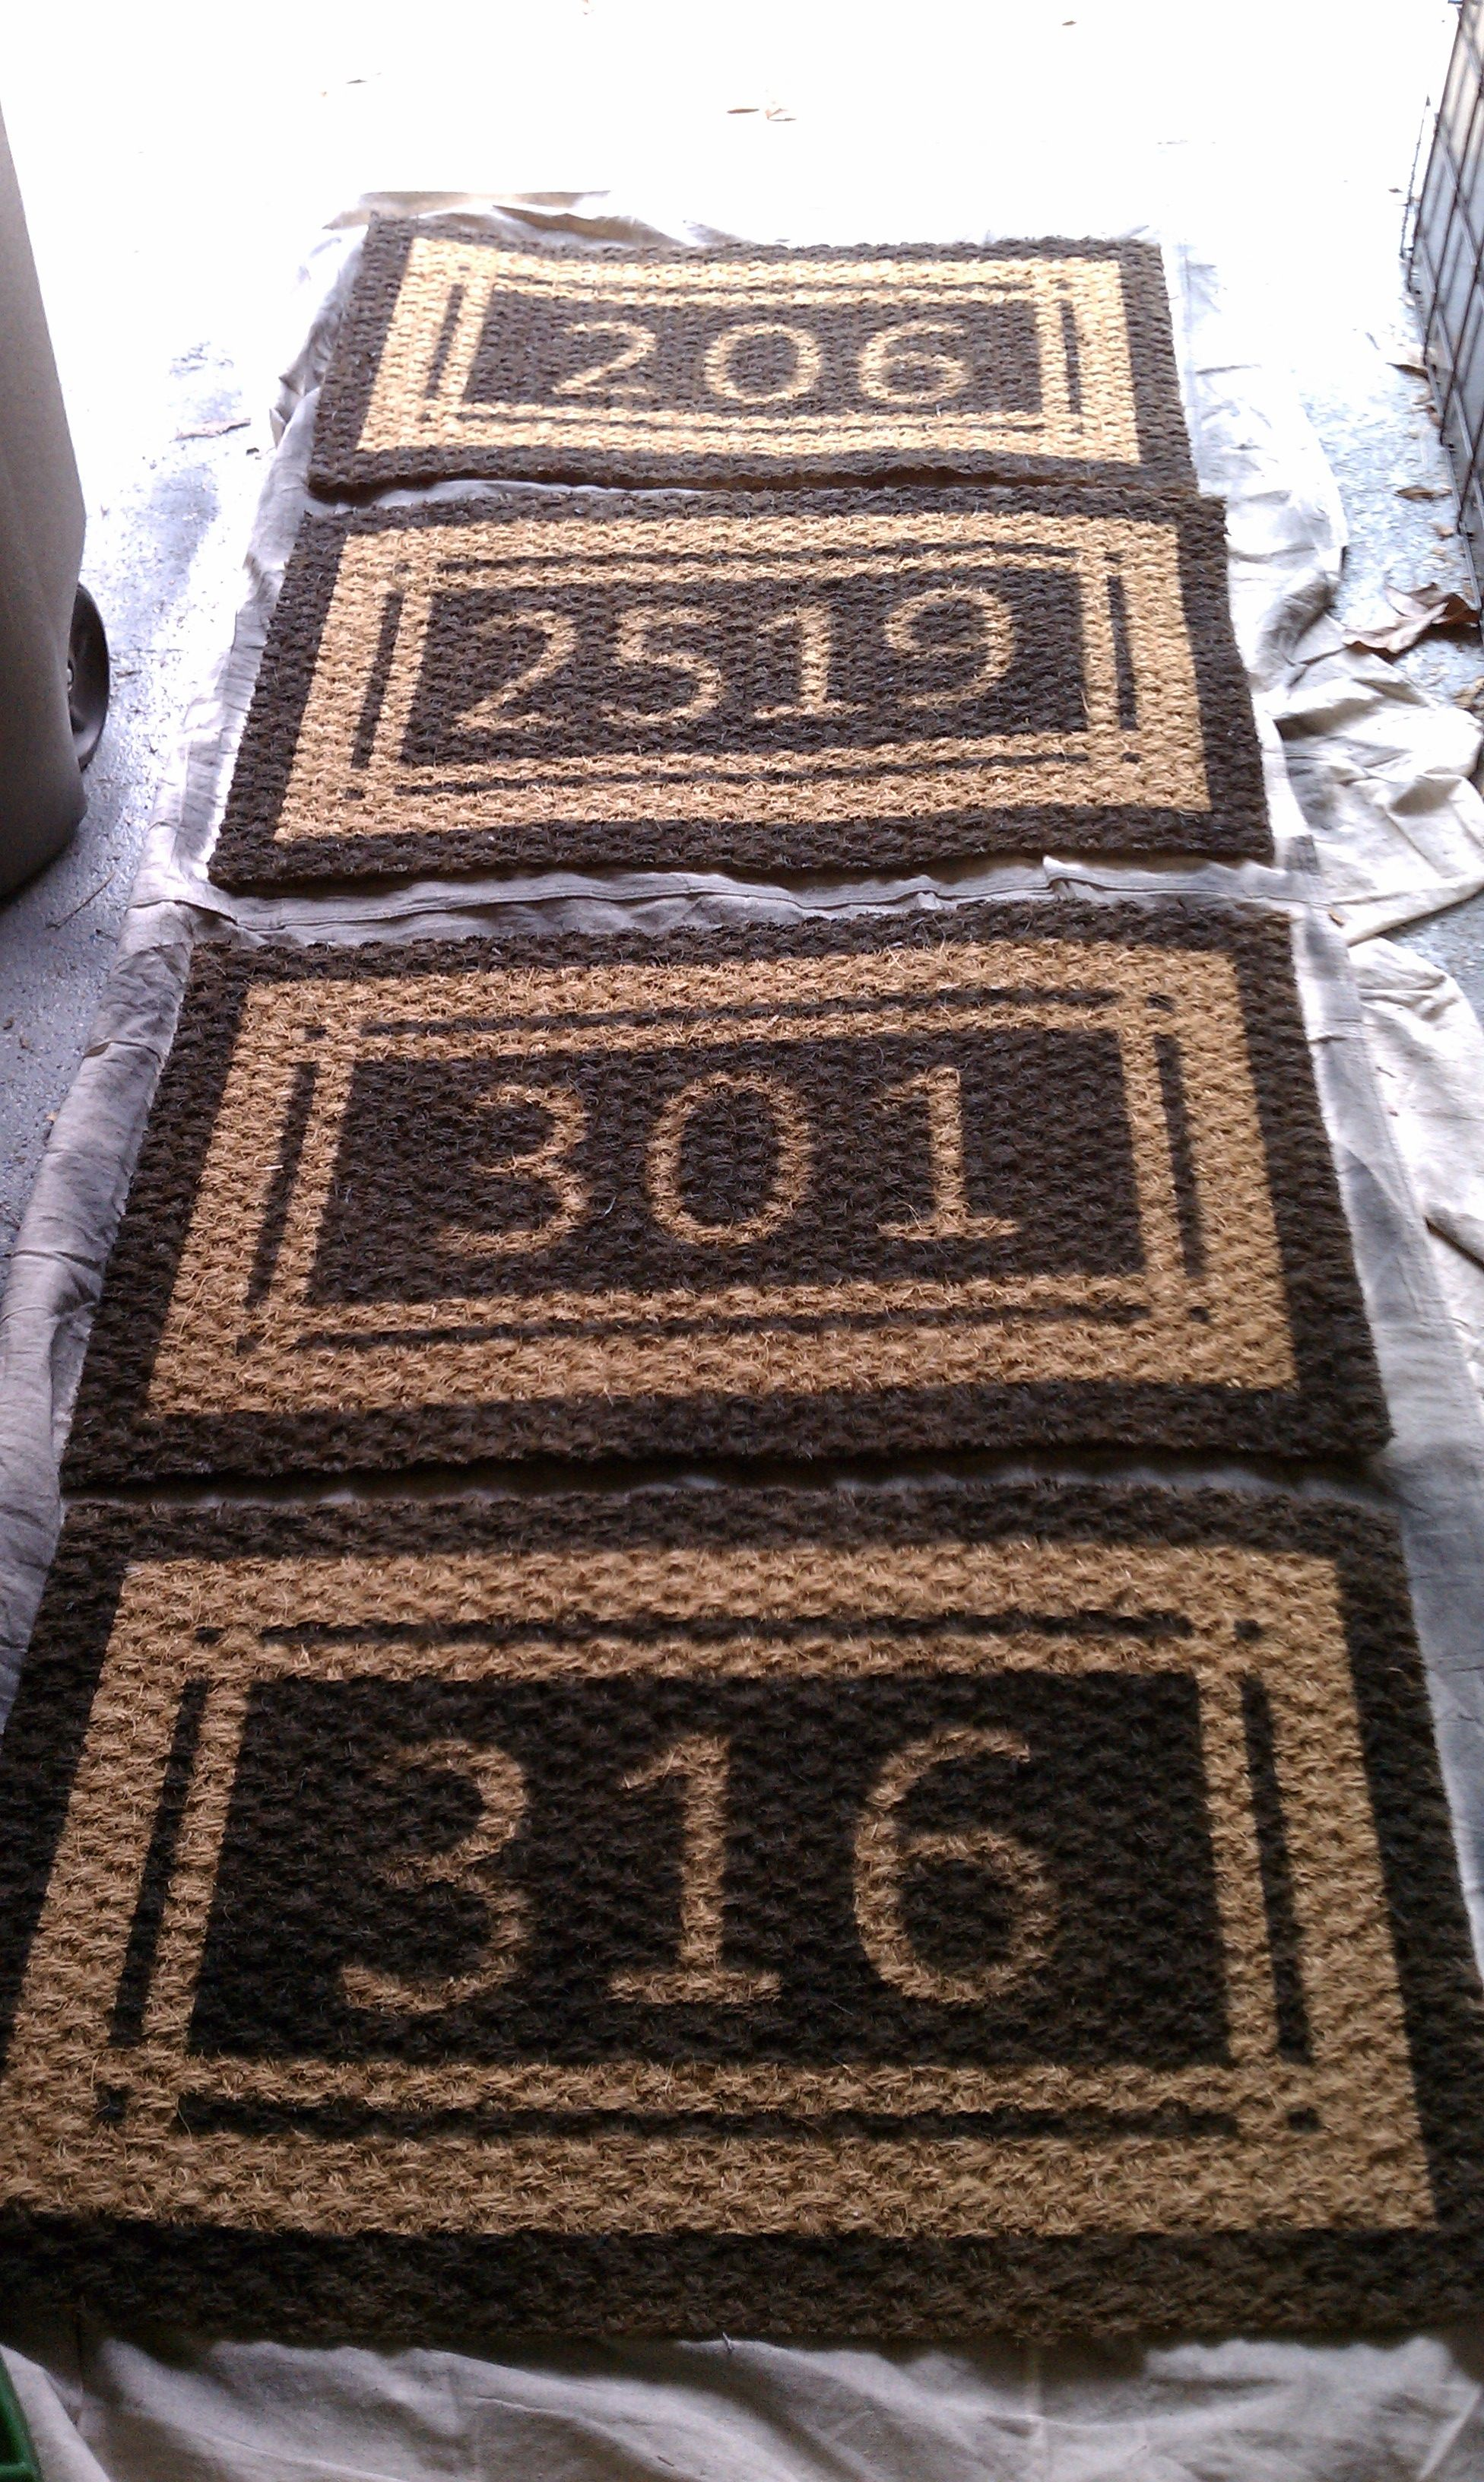 Stencil address on your door mat. Should have thought of that a LONG time ago! {a} // http://findanswerhere.com/homedecor